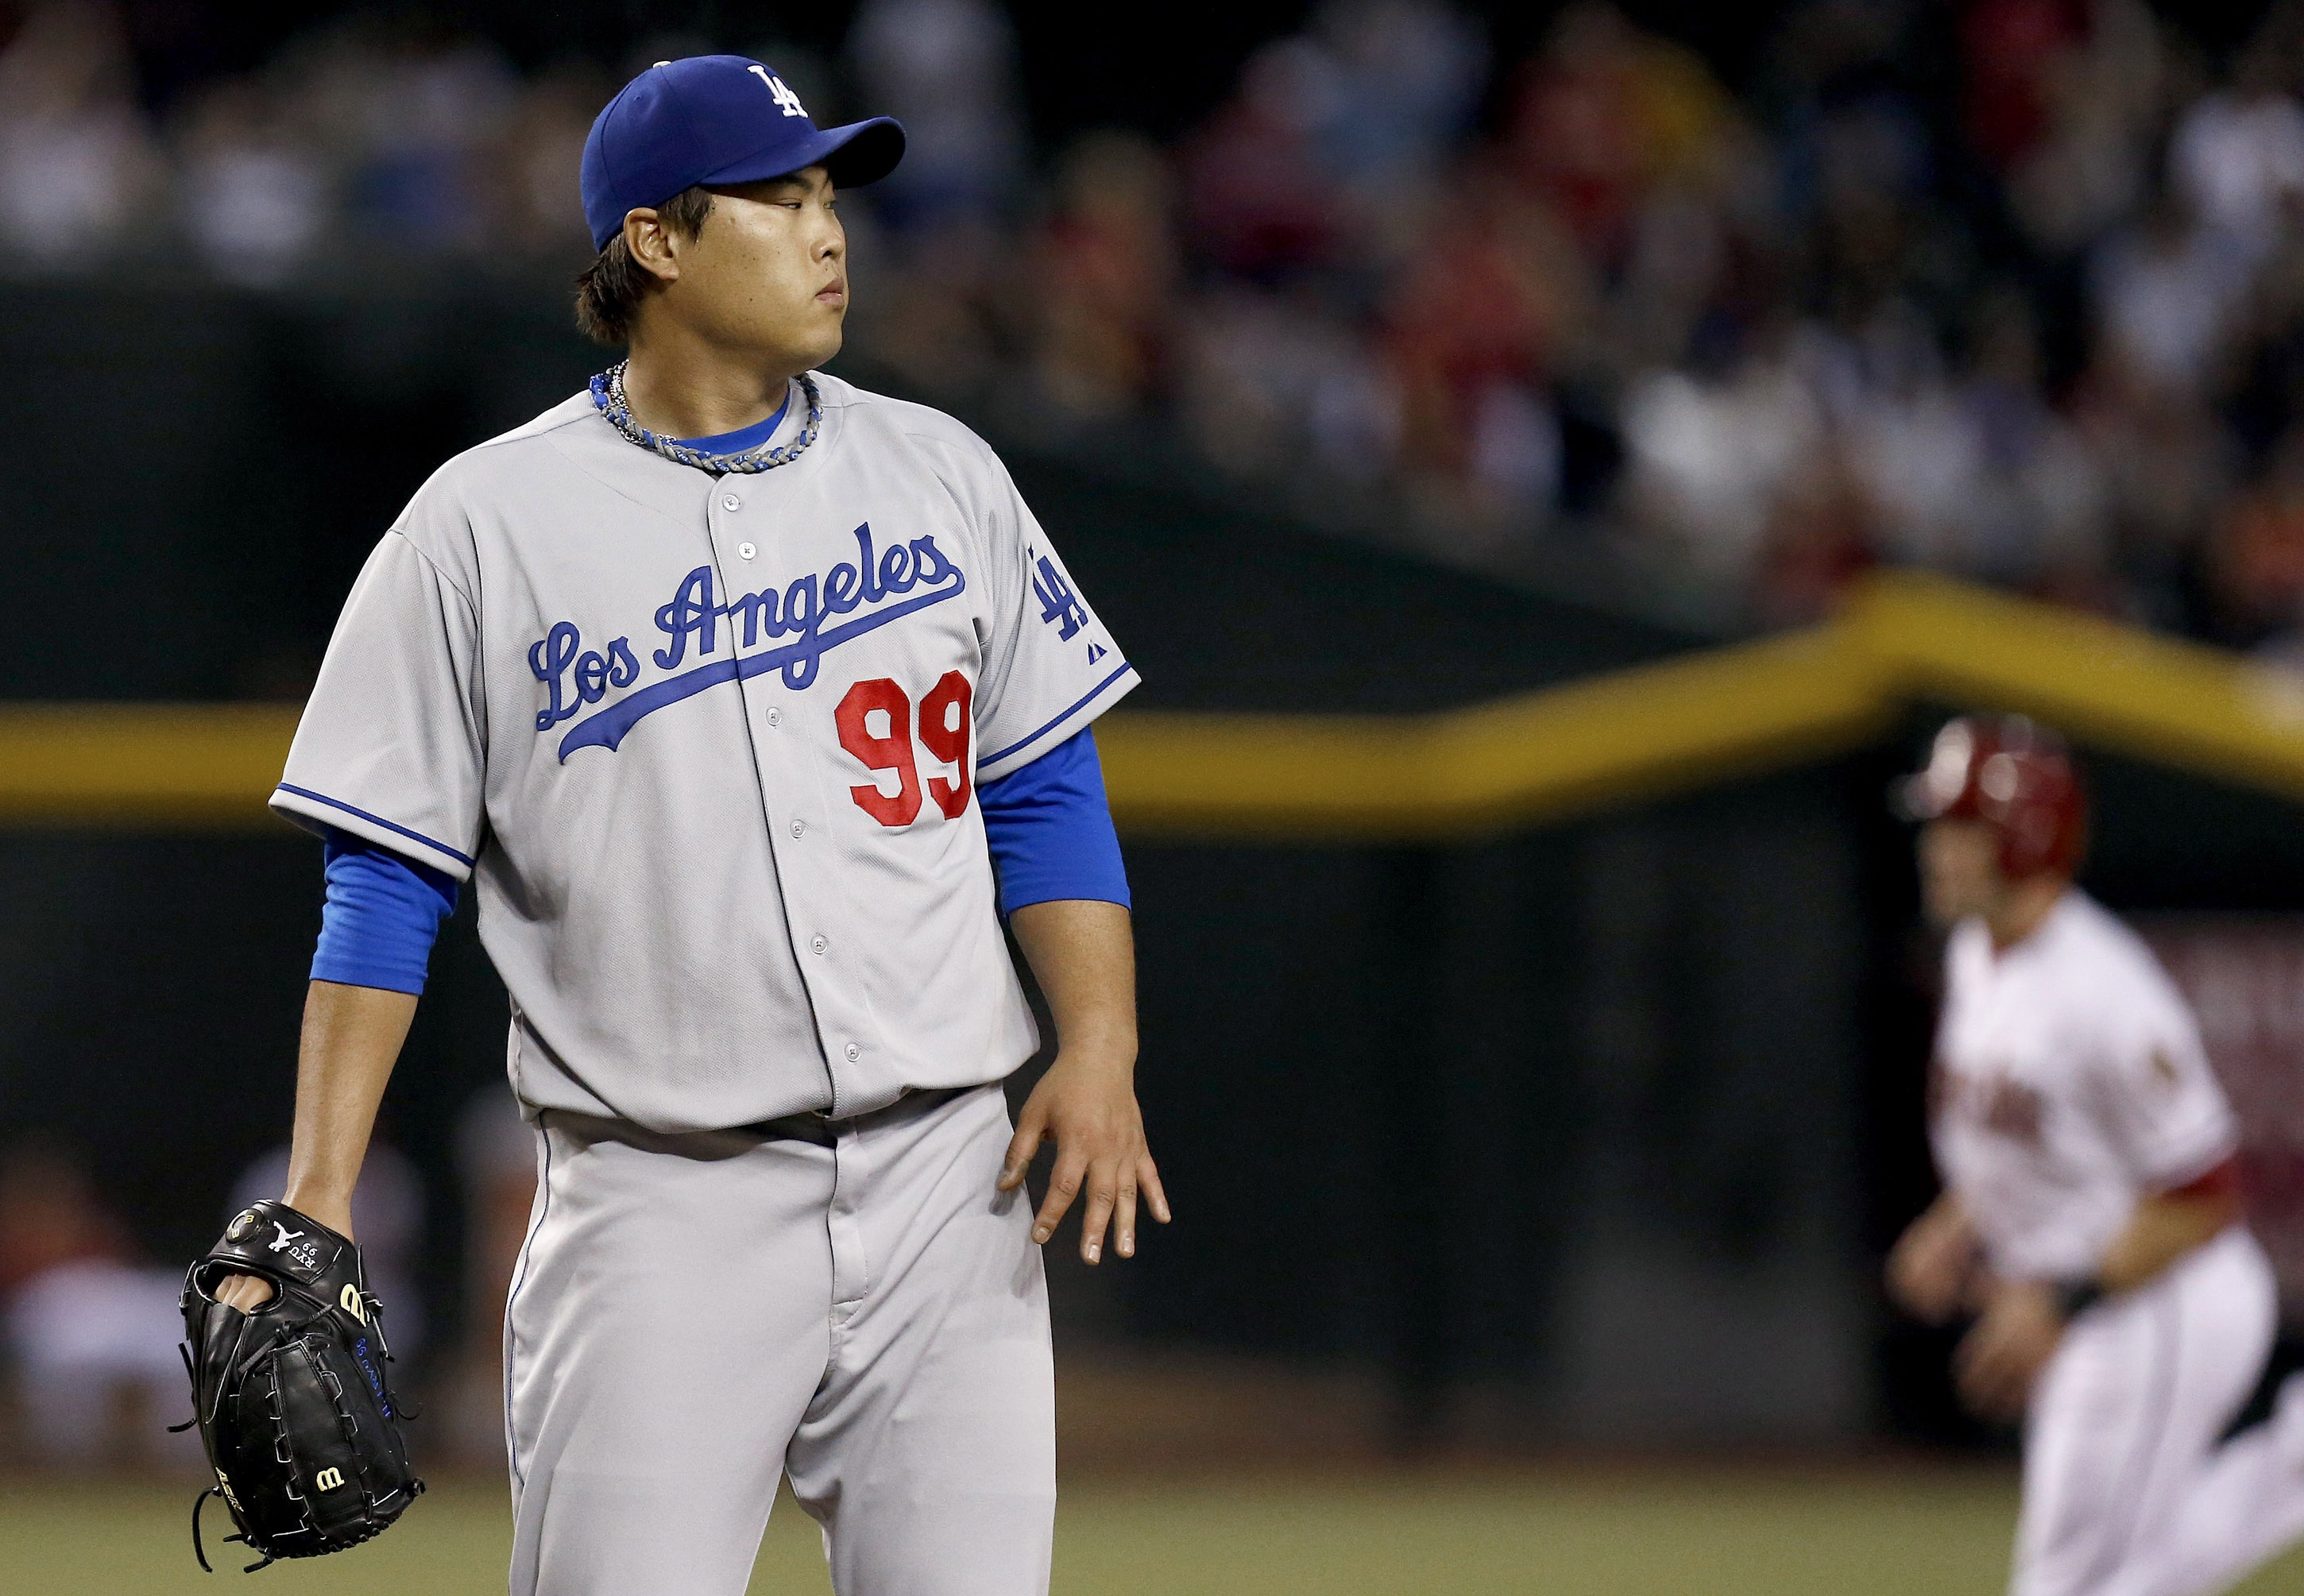 Los Angeles Dodgers' Hyun-Jin Ryu (99), of South Korea, looks at a Arizona Diamondbacks' Paul Goldschmidt two-run home run as Diamondbacks' A.J. Pollock, right, runs the bases in the first inning of a baseball game on Monday, Sept. 16, 2013, in Phoenix. (AP Photo/Ross D. Franklin)